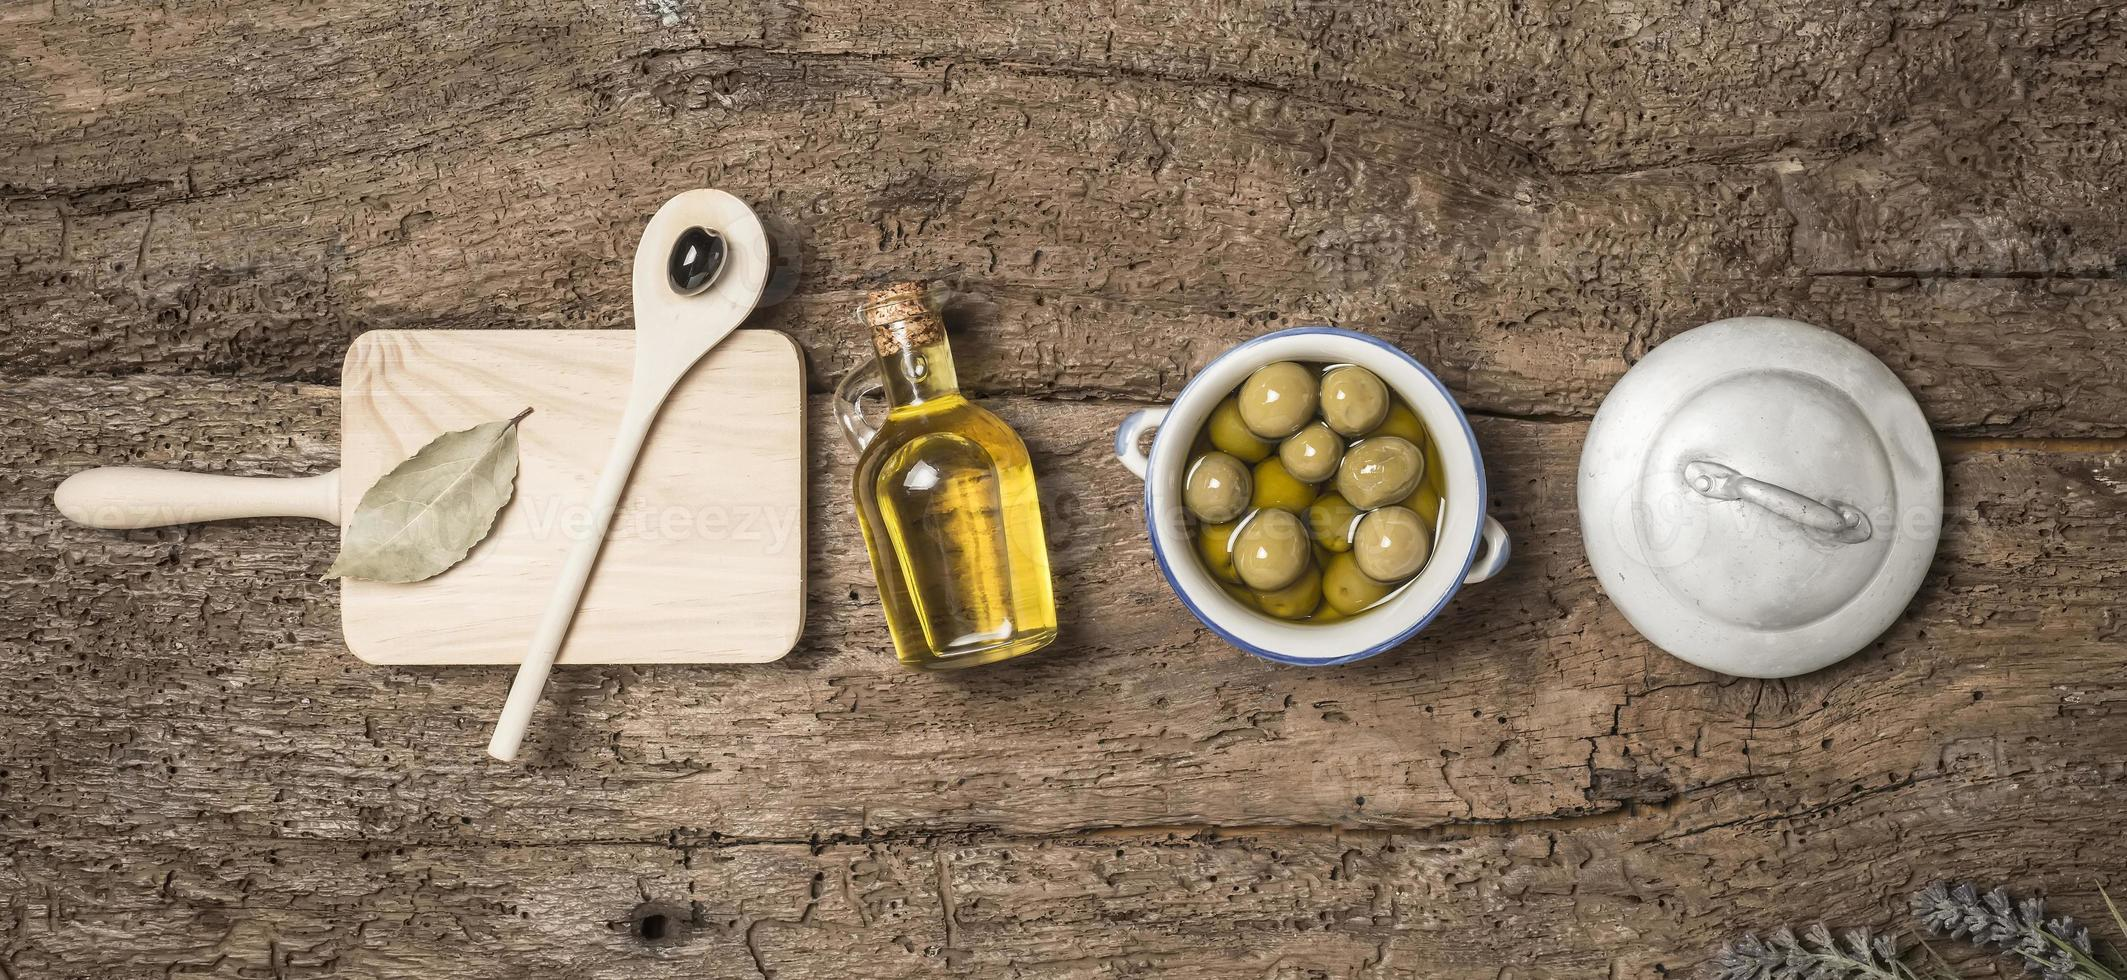 OLive oil and olives wooden table photo